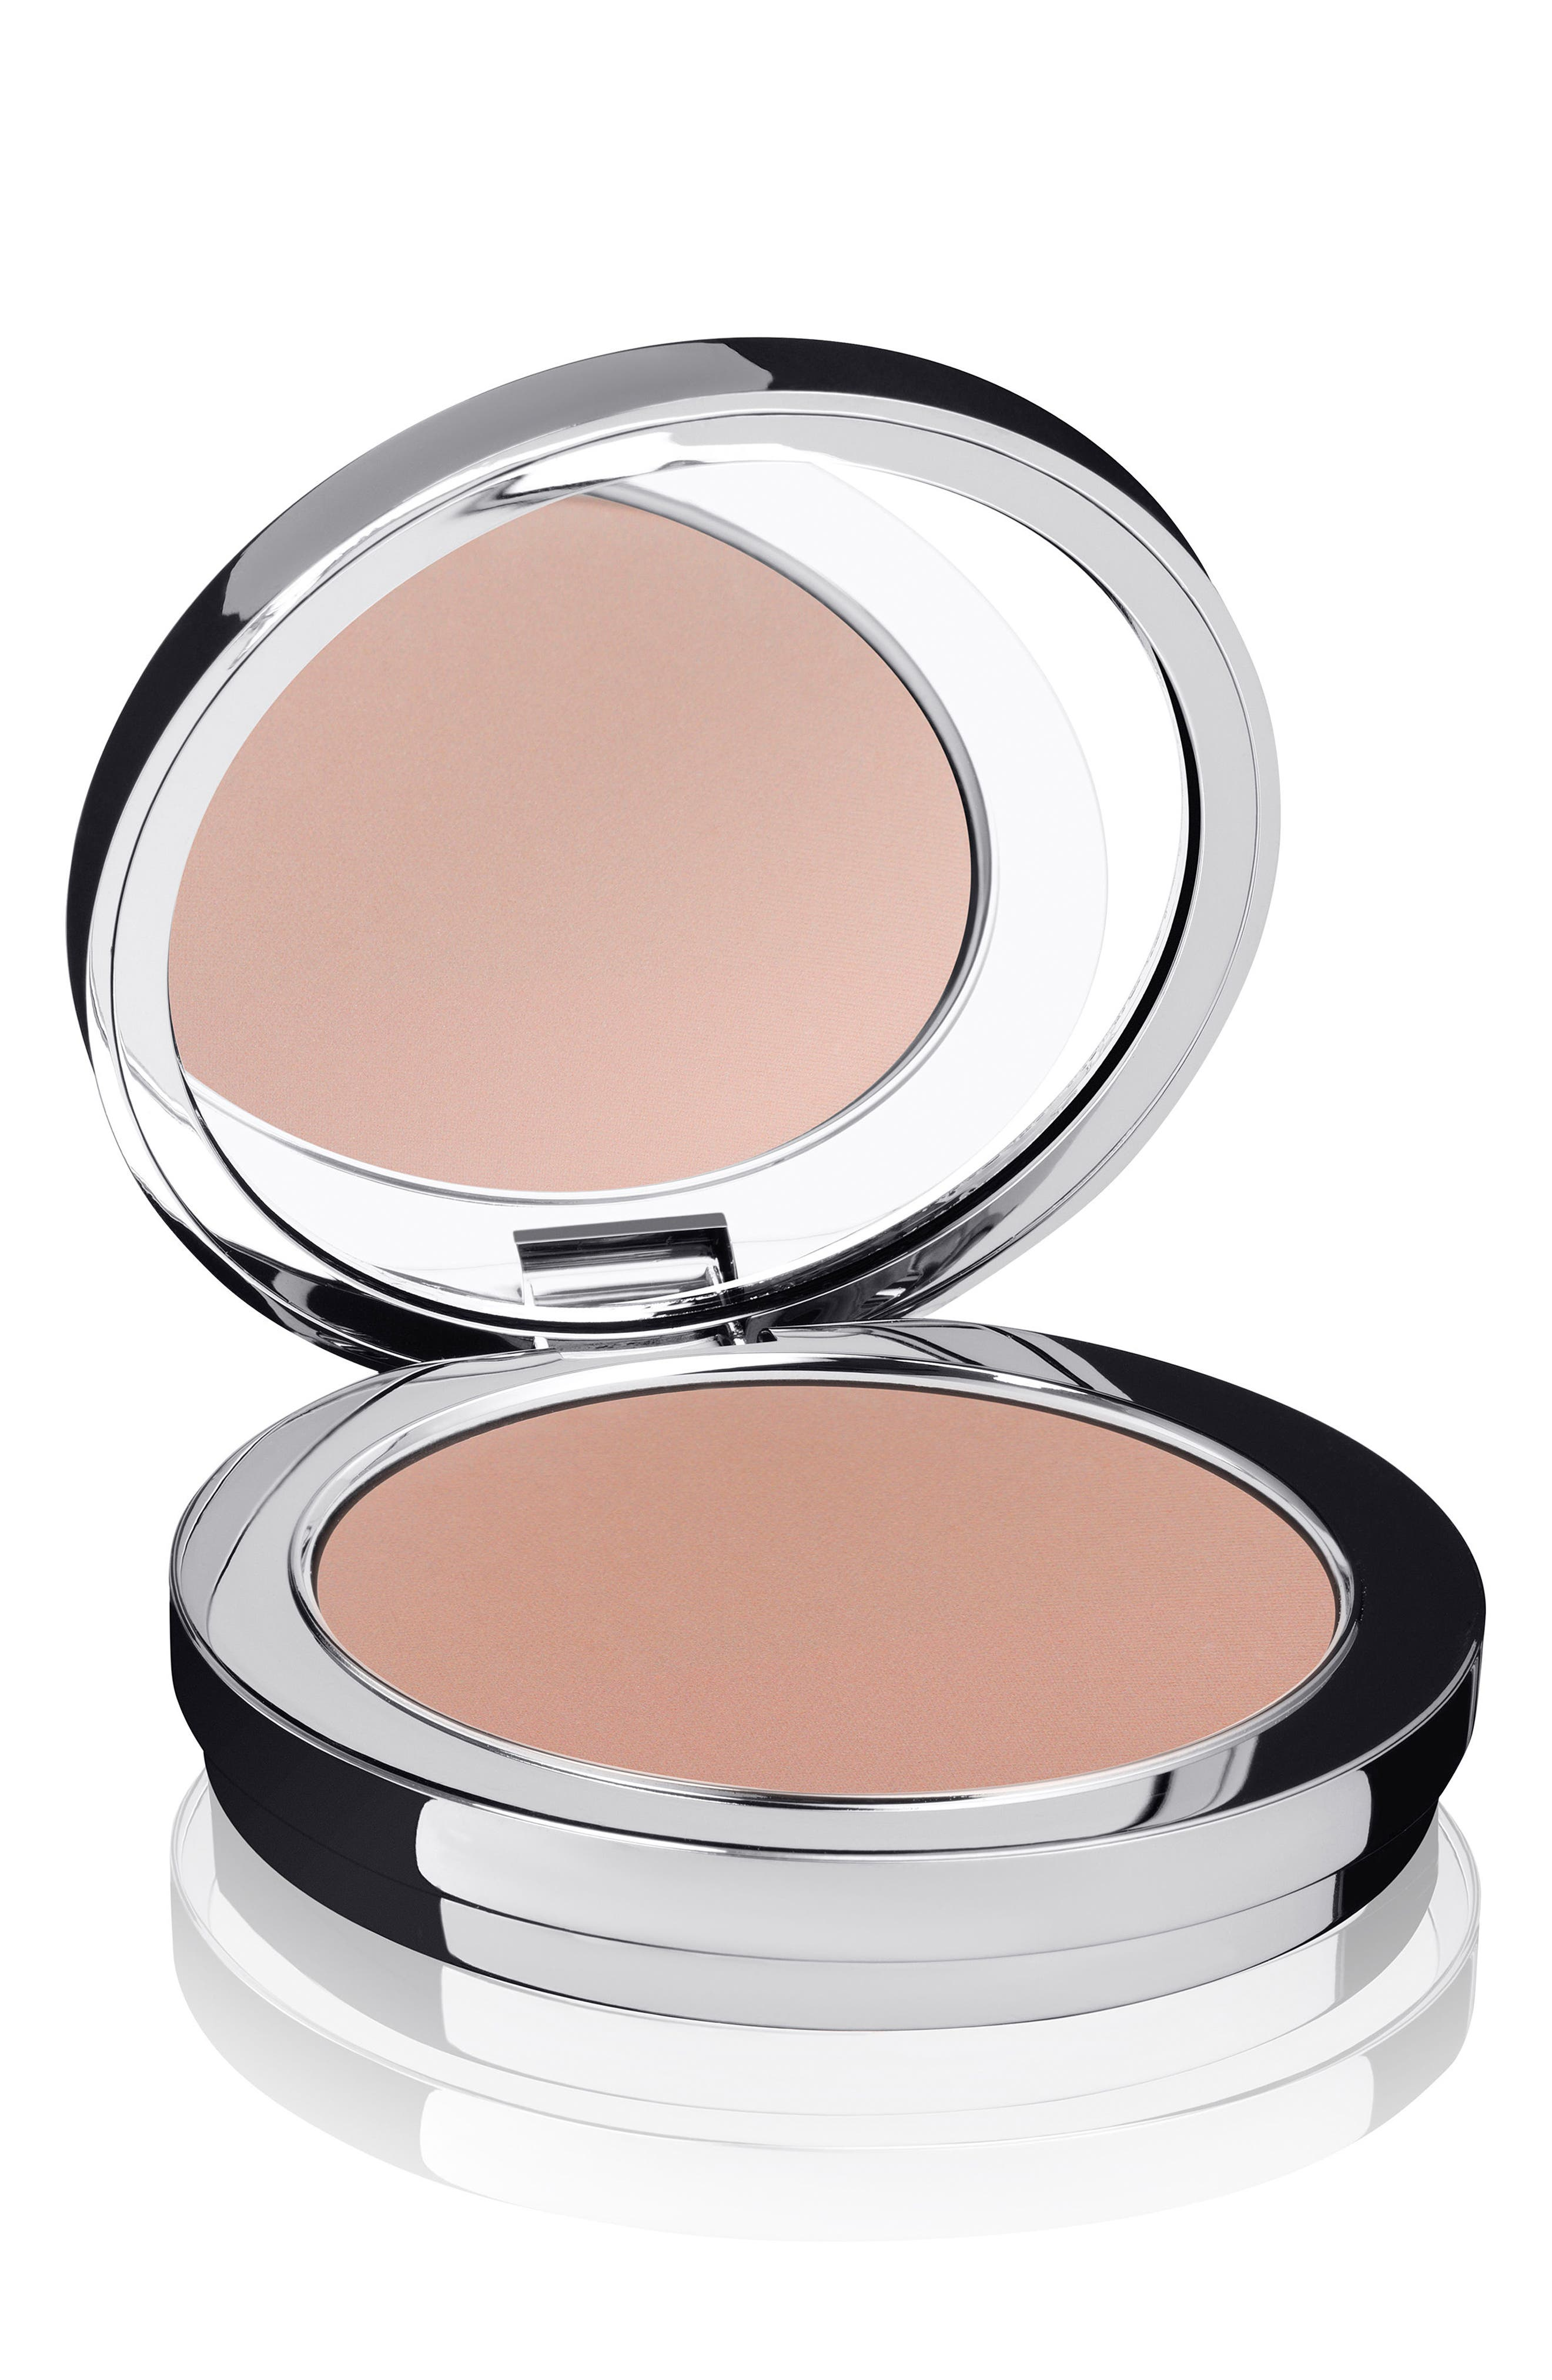 SPACE.NK.apothecary Rodial Instaglam<sup>™</sup> Deluxe Bronzing Powder Compact,                         Main,                         color, Bronzing Powder